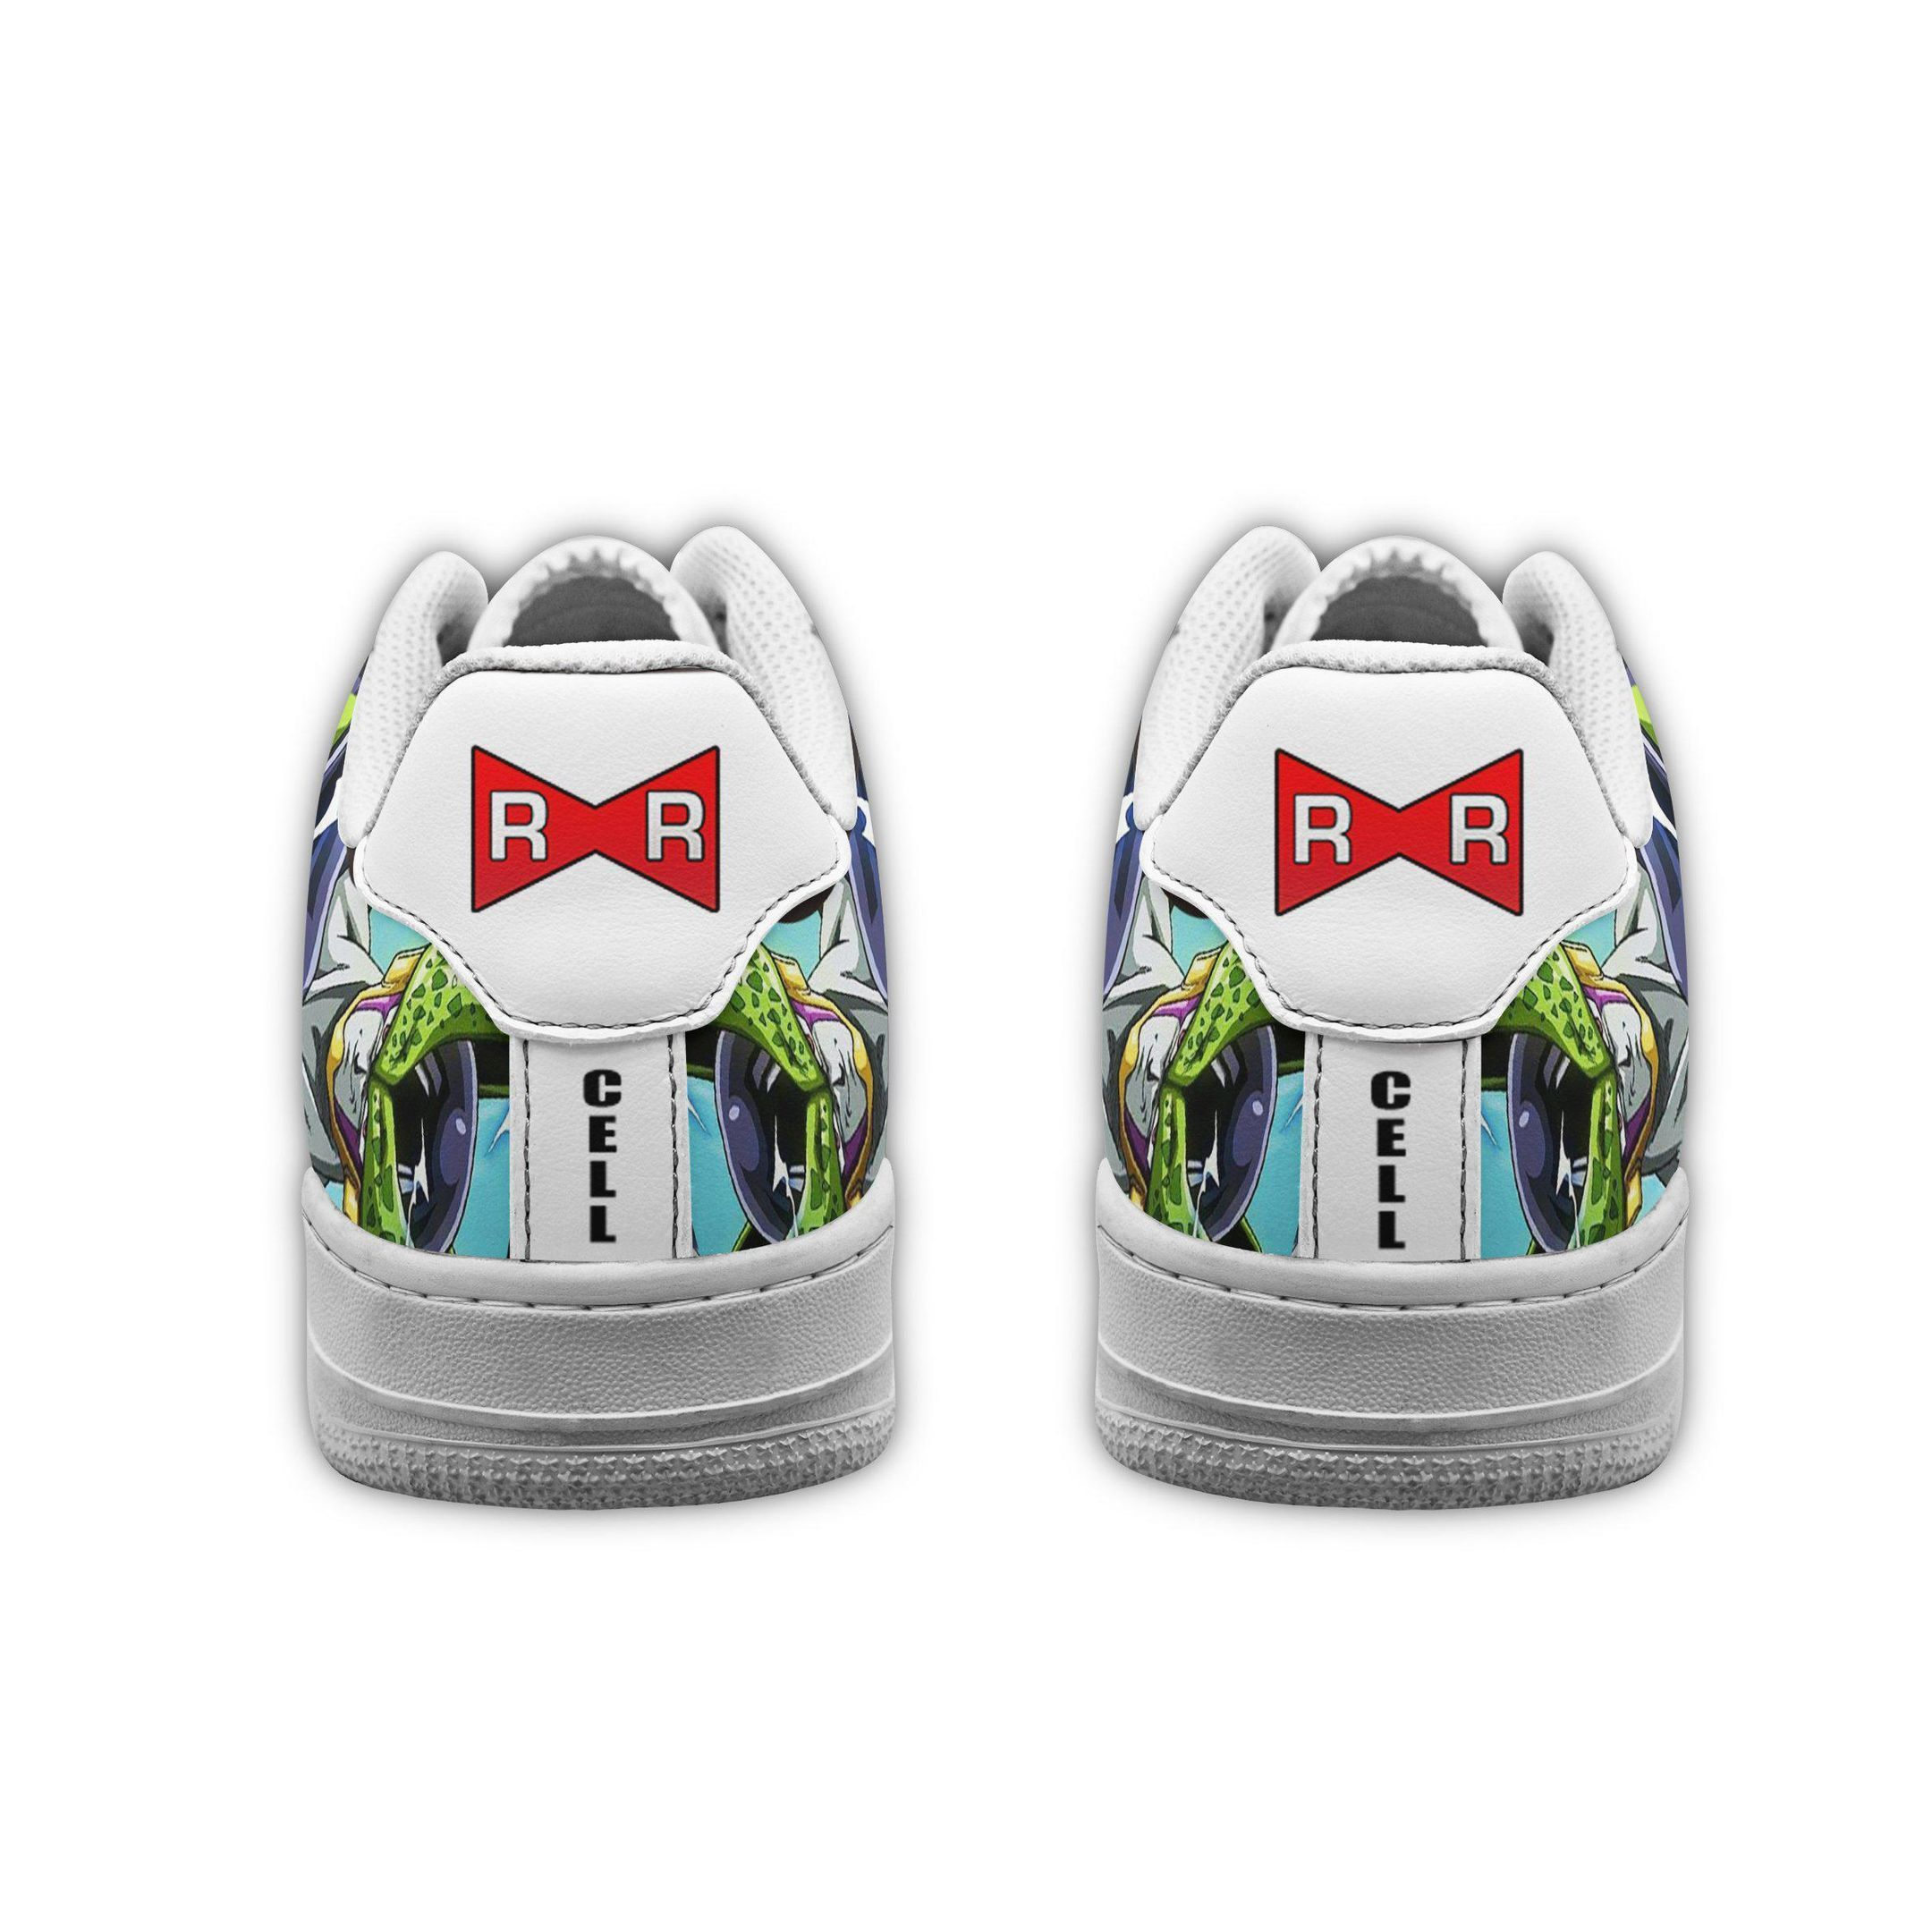 Cell Air Shoes Dragon Ball Z Anime Shoes Fan Gift GO1012